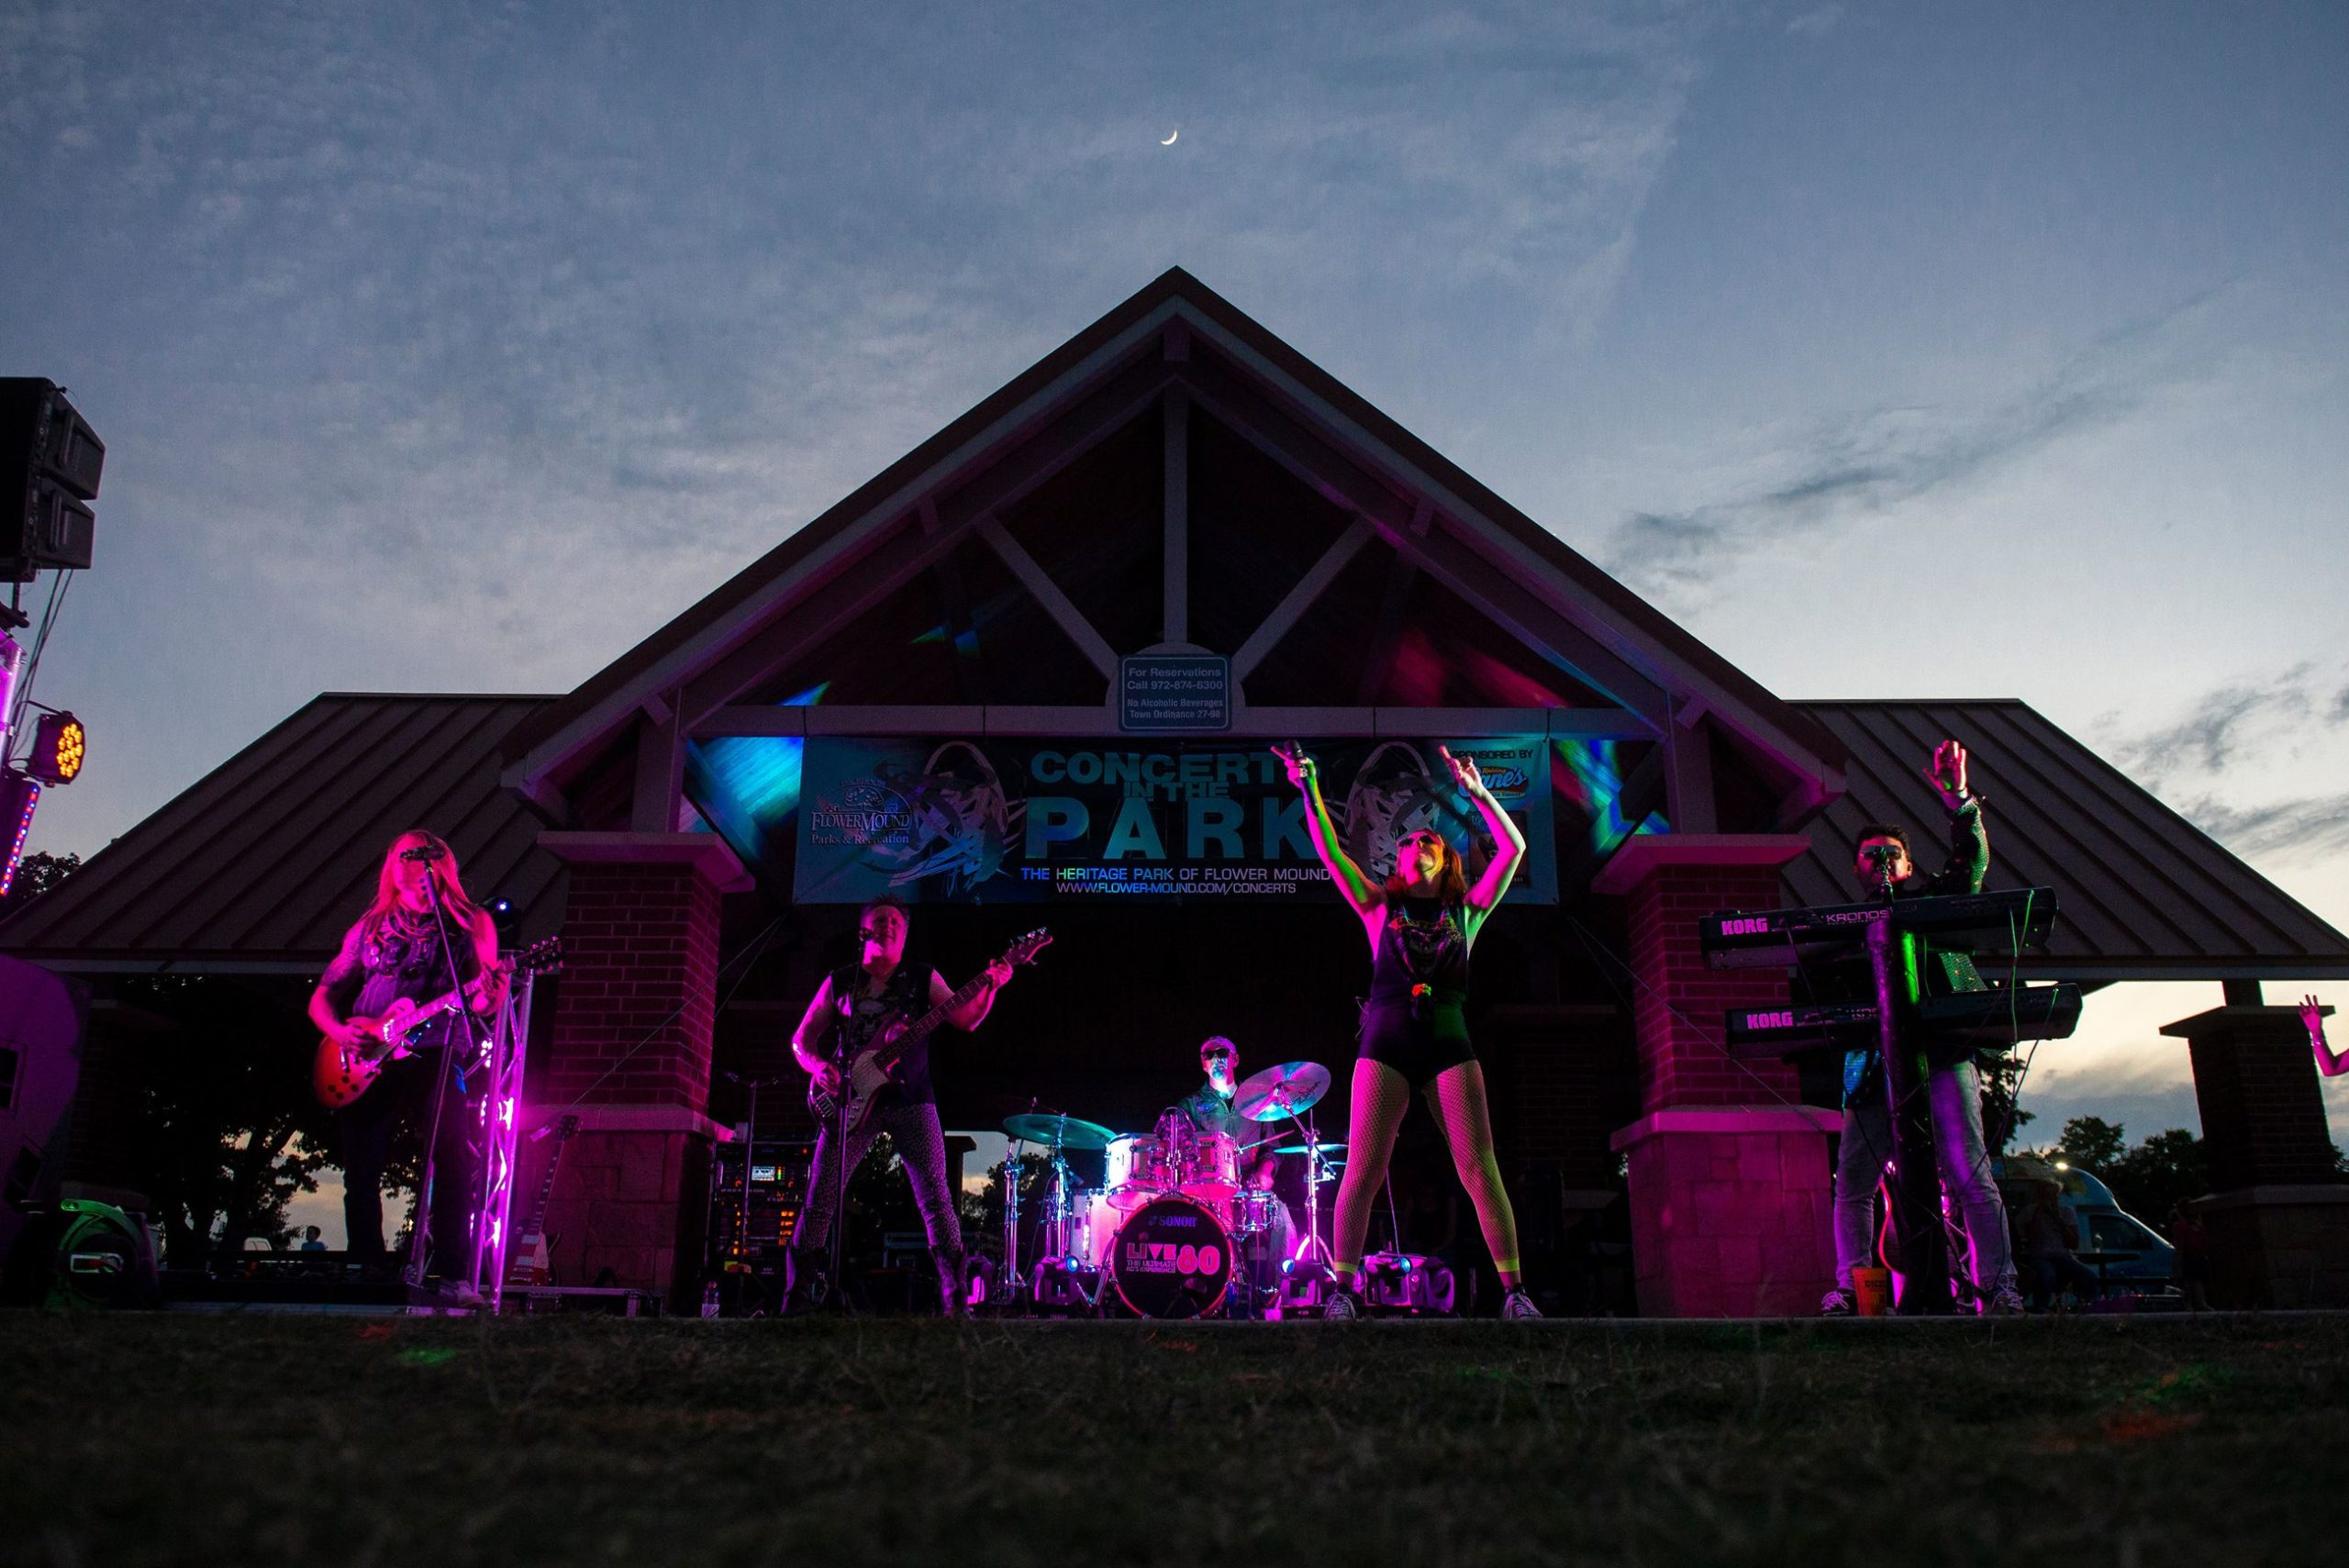 Concerts in the Park, Flower Mound